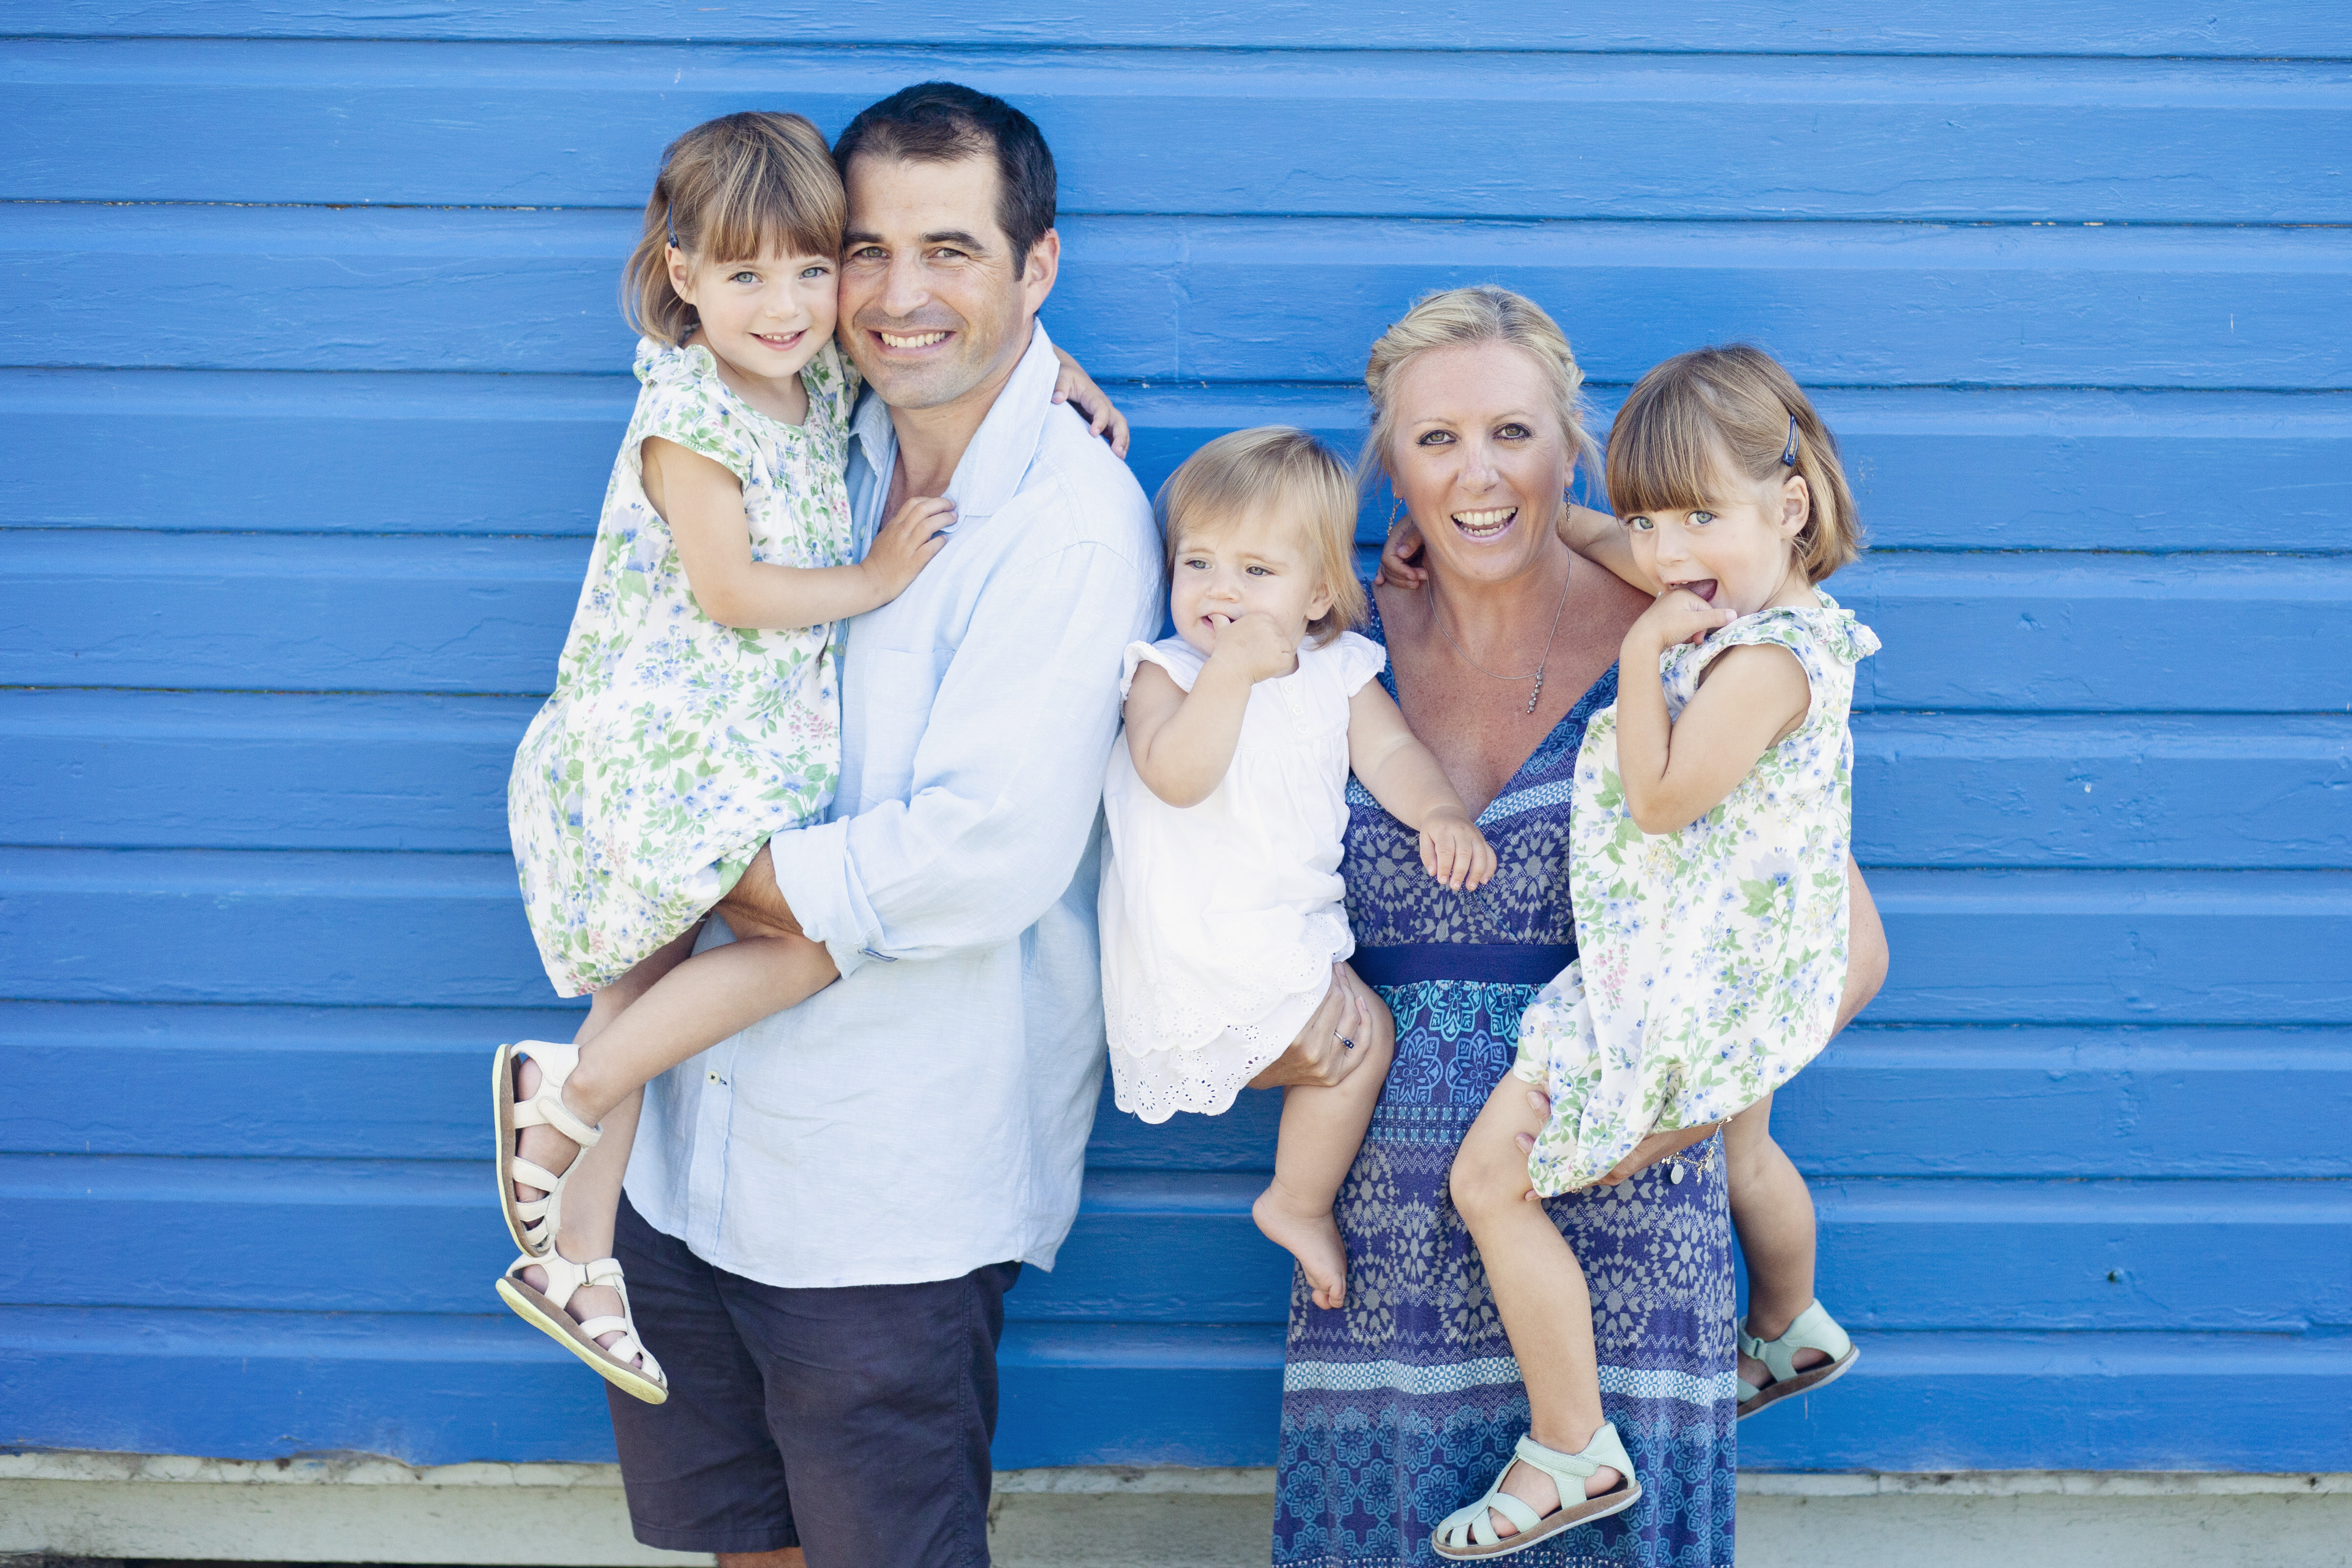 The Miller family. Mum, dad, twin girls and one year old posing for a photo